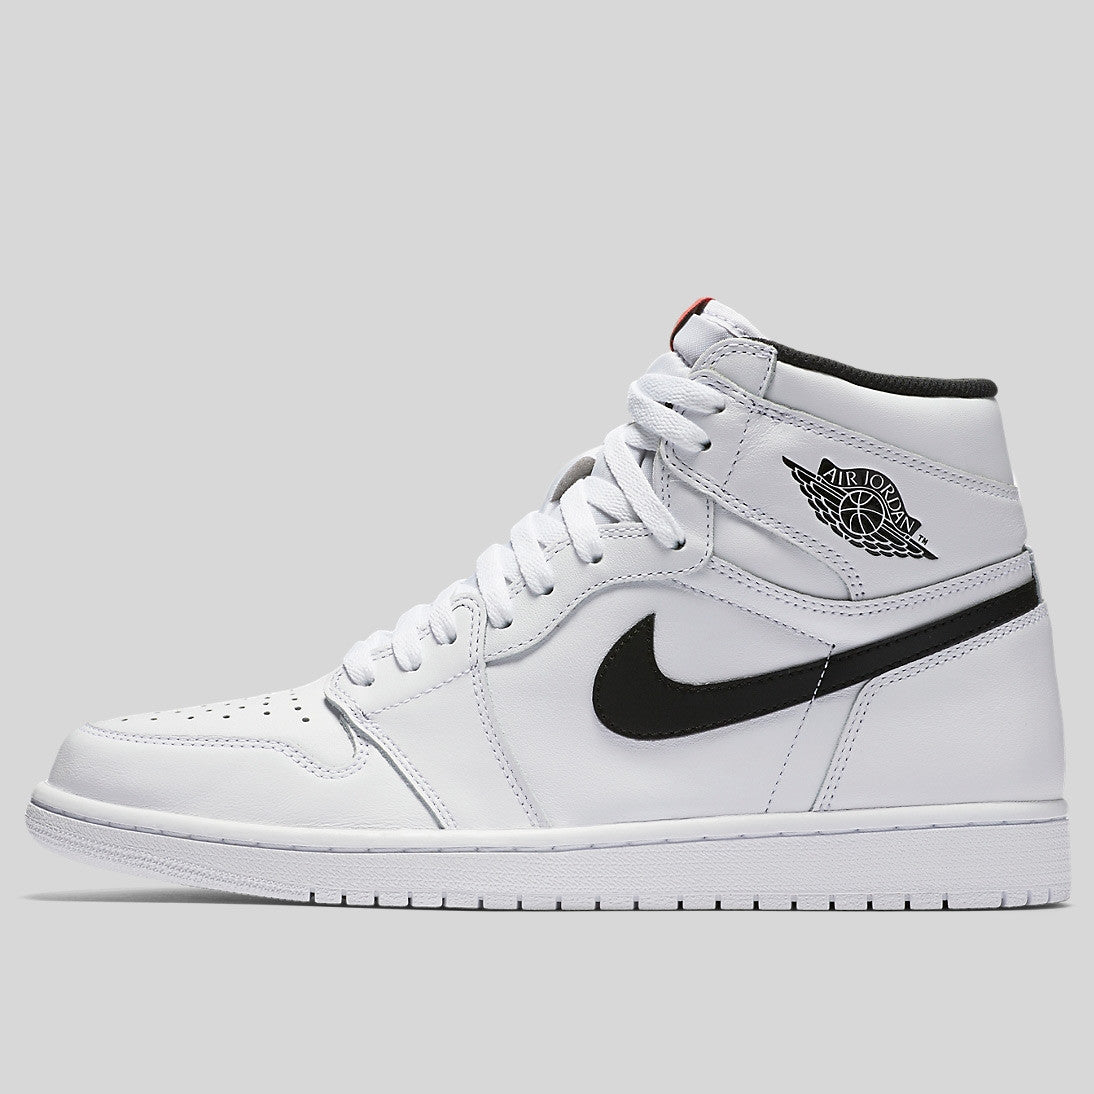 eb59ac357feadd Nike Air Jordan 1 Retro High OG Yin Yang White (555088-102)